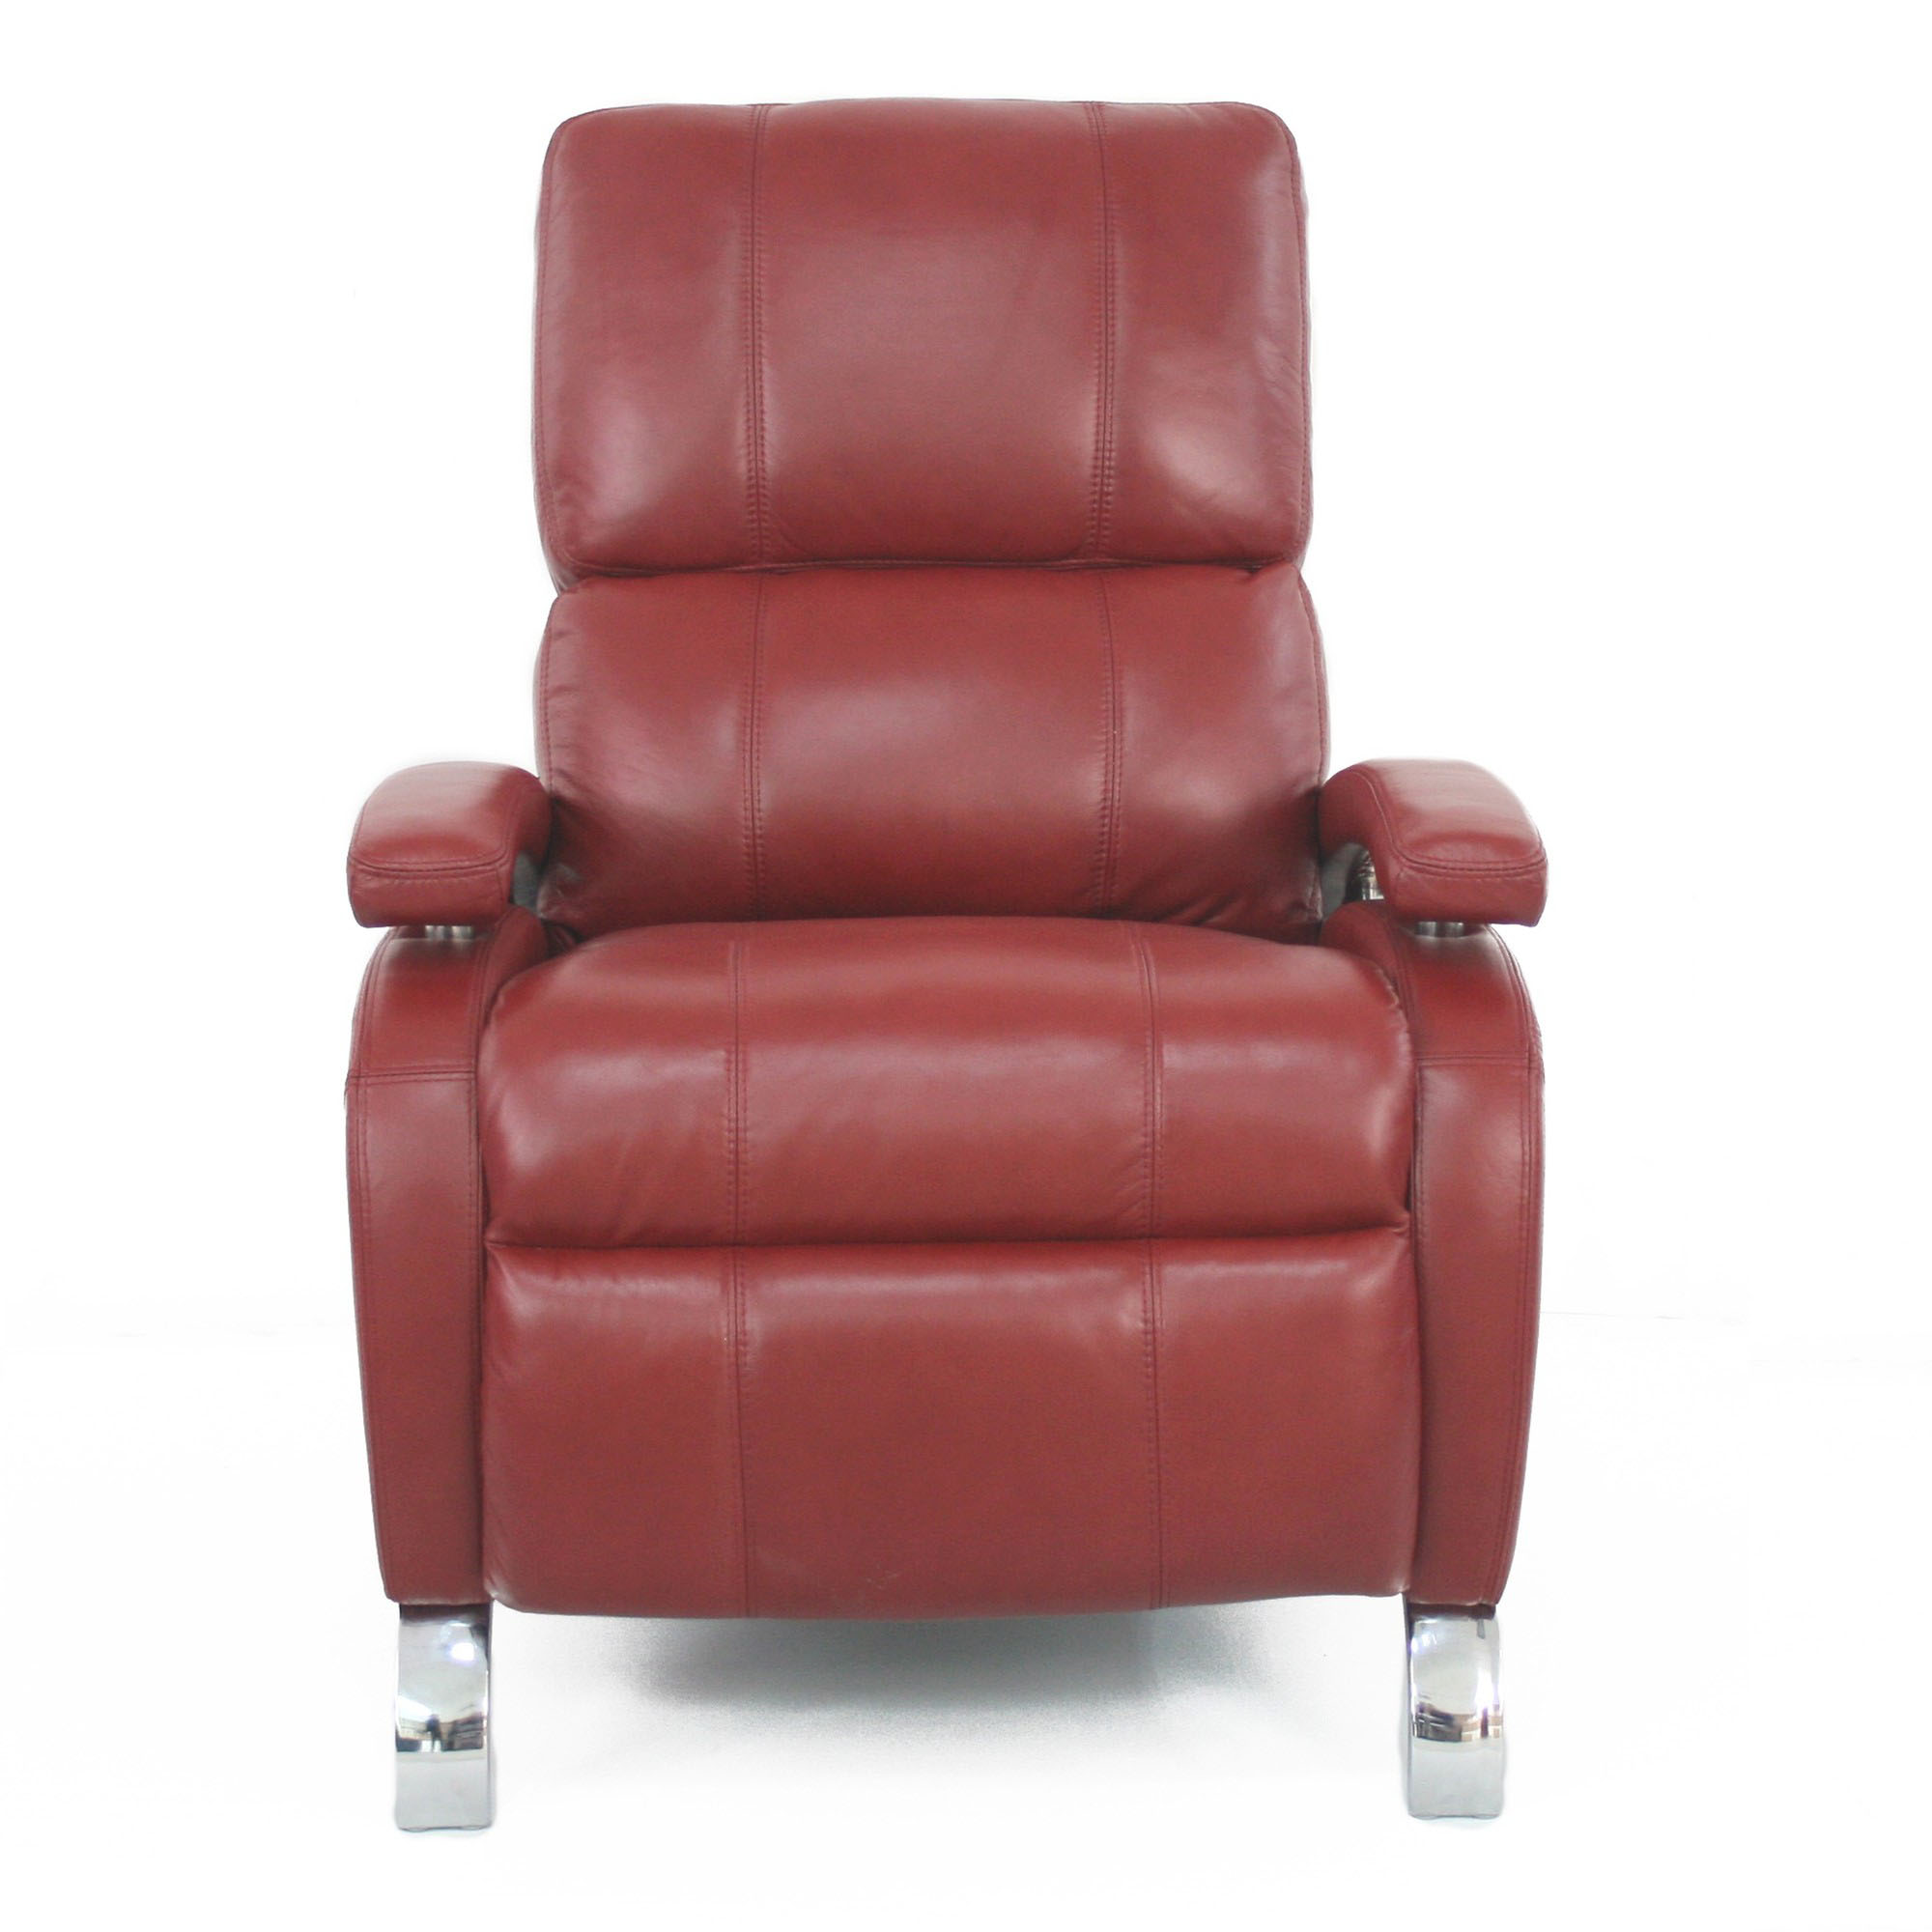 Red Leather Reclining Chair barcalounger oracle ii recliner chair - leather recliner chair